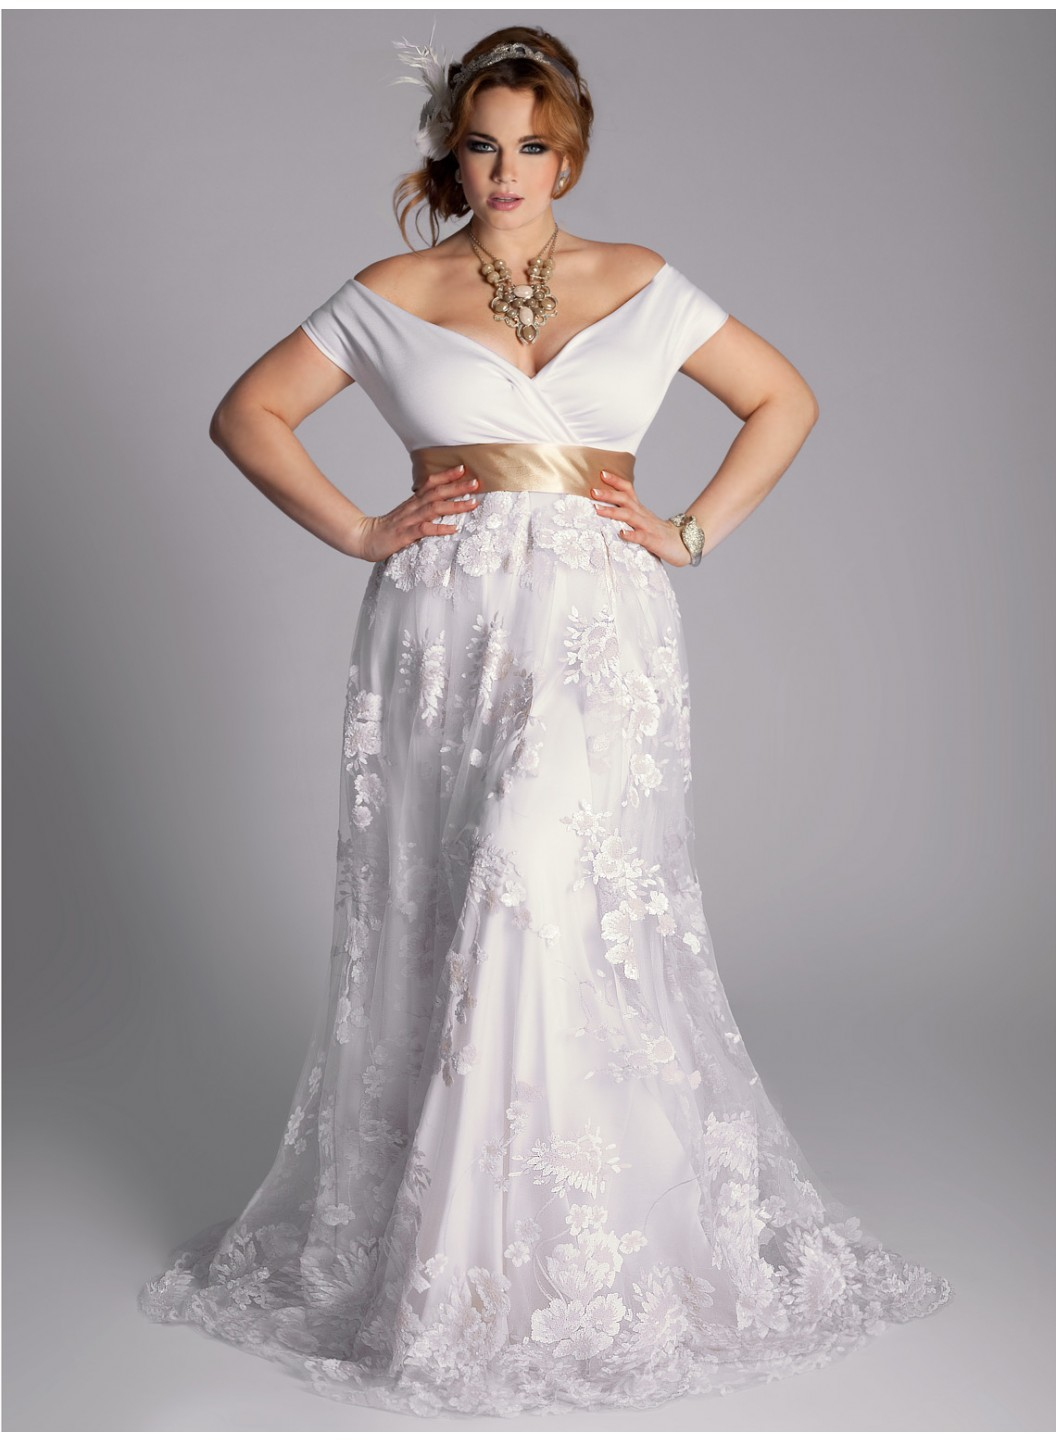 Plus size 1920s wedding dresses style ten plus size lace for Best wedding dress styles for plus size brides